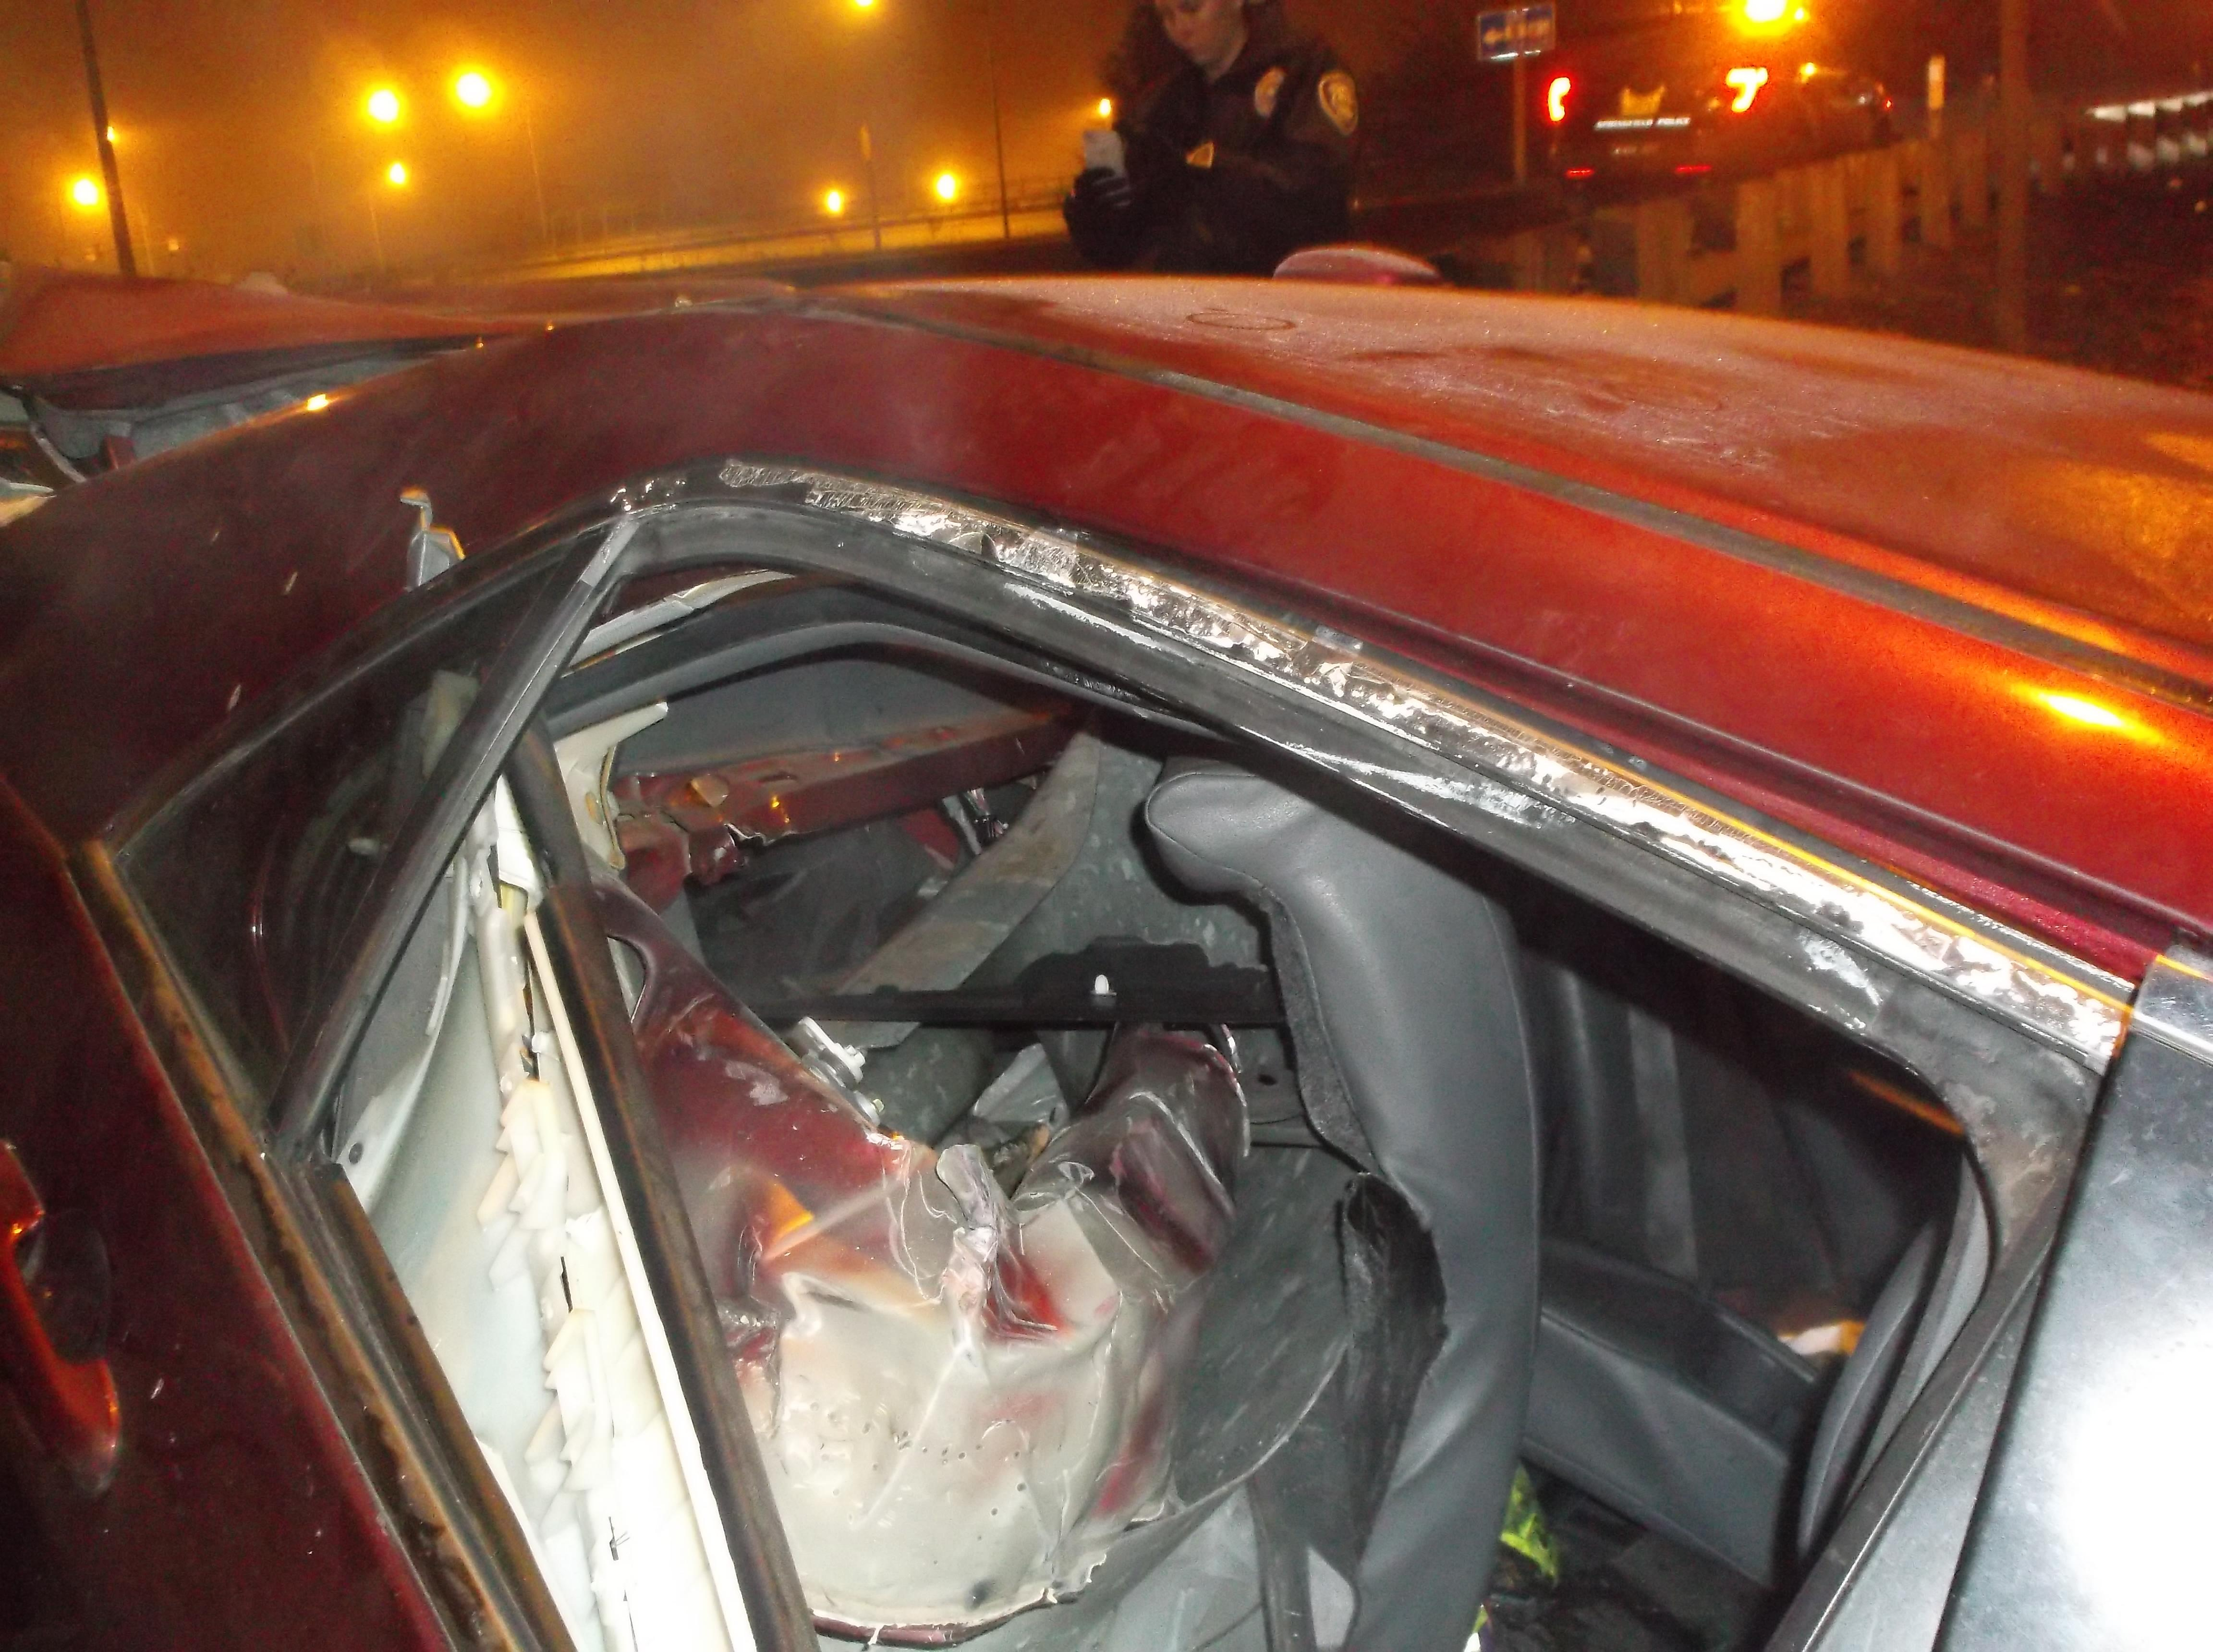 <p>Police say the collision caused the Honda to spin backwards into the steel shoulder barrier, which collapsed the entire rear-end of the car, puncturing through the rear seat at an angle and forcing the rear passenger-side door open. (Springfield Police Department photo)</p>